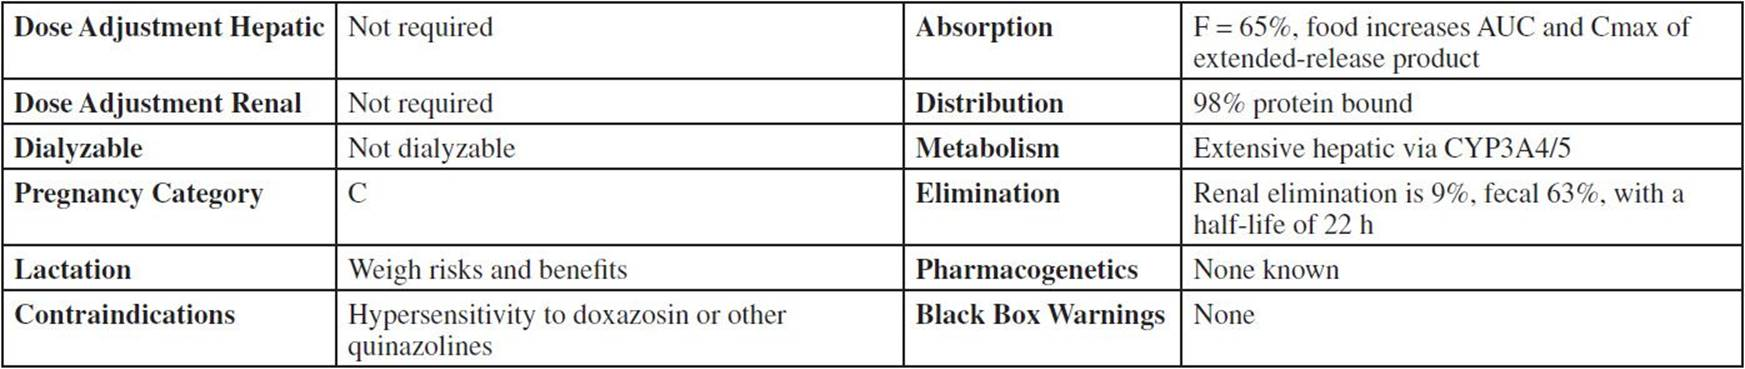 Ivermectin dosage in adults